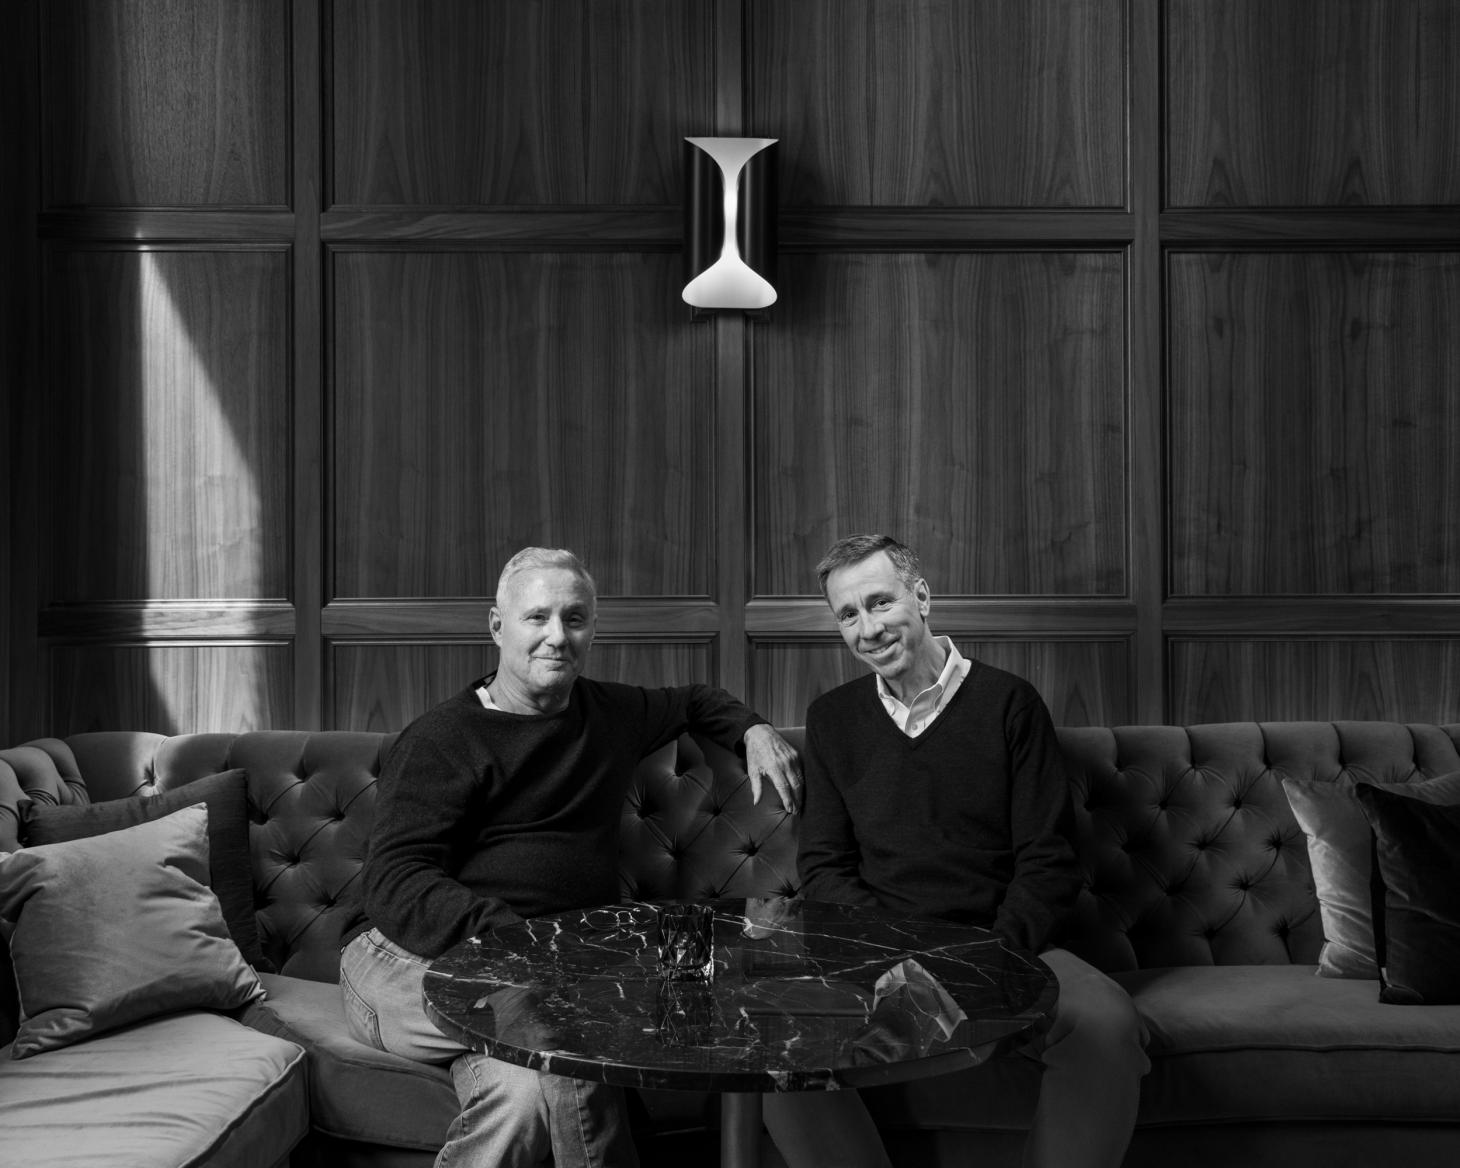 Ian Schrager (left) and Arne Sorenson photographed in the Times Square Edition Hotel in NYC